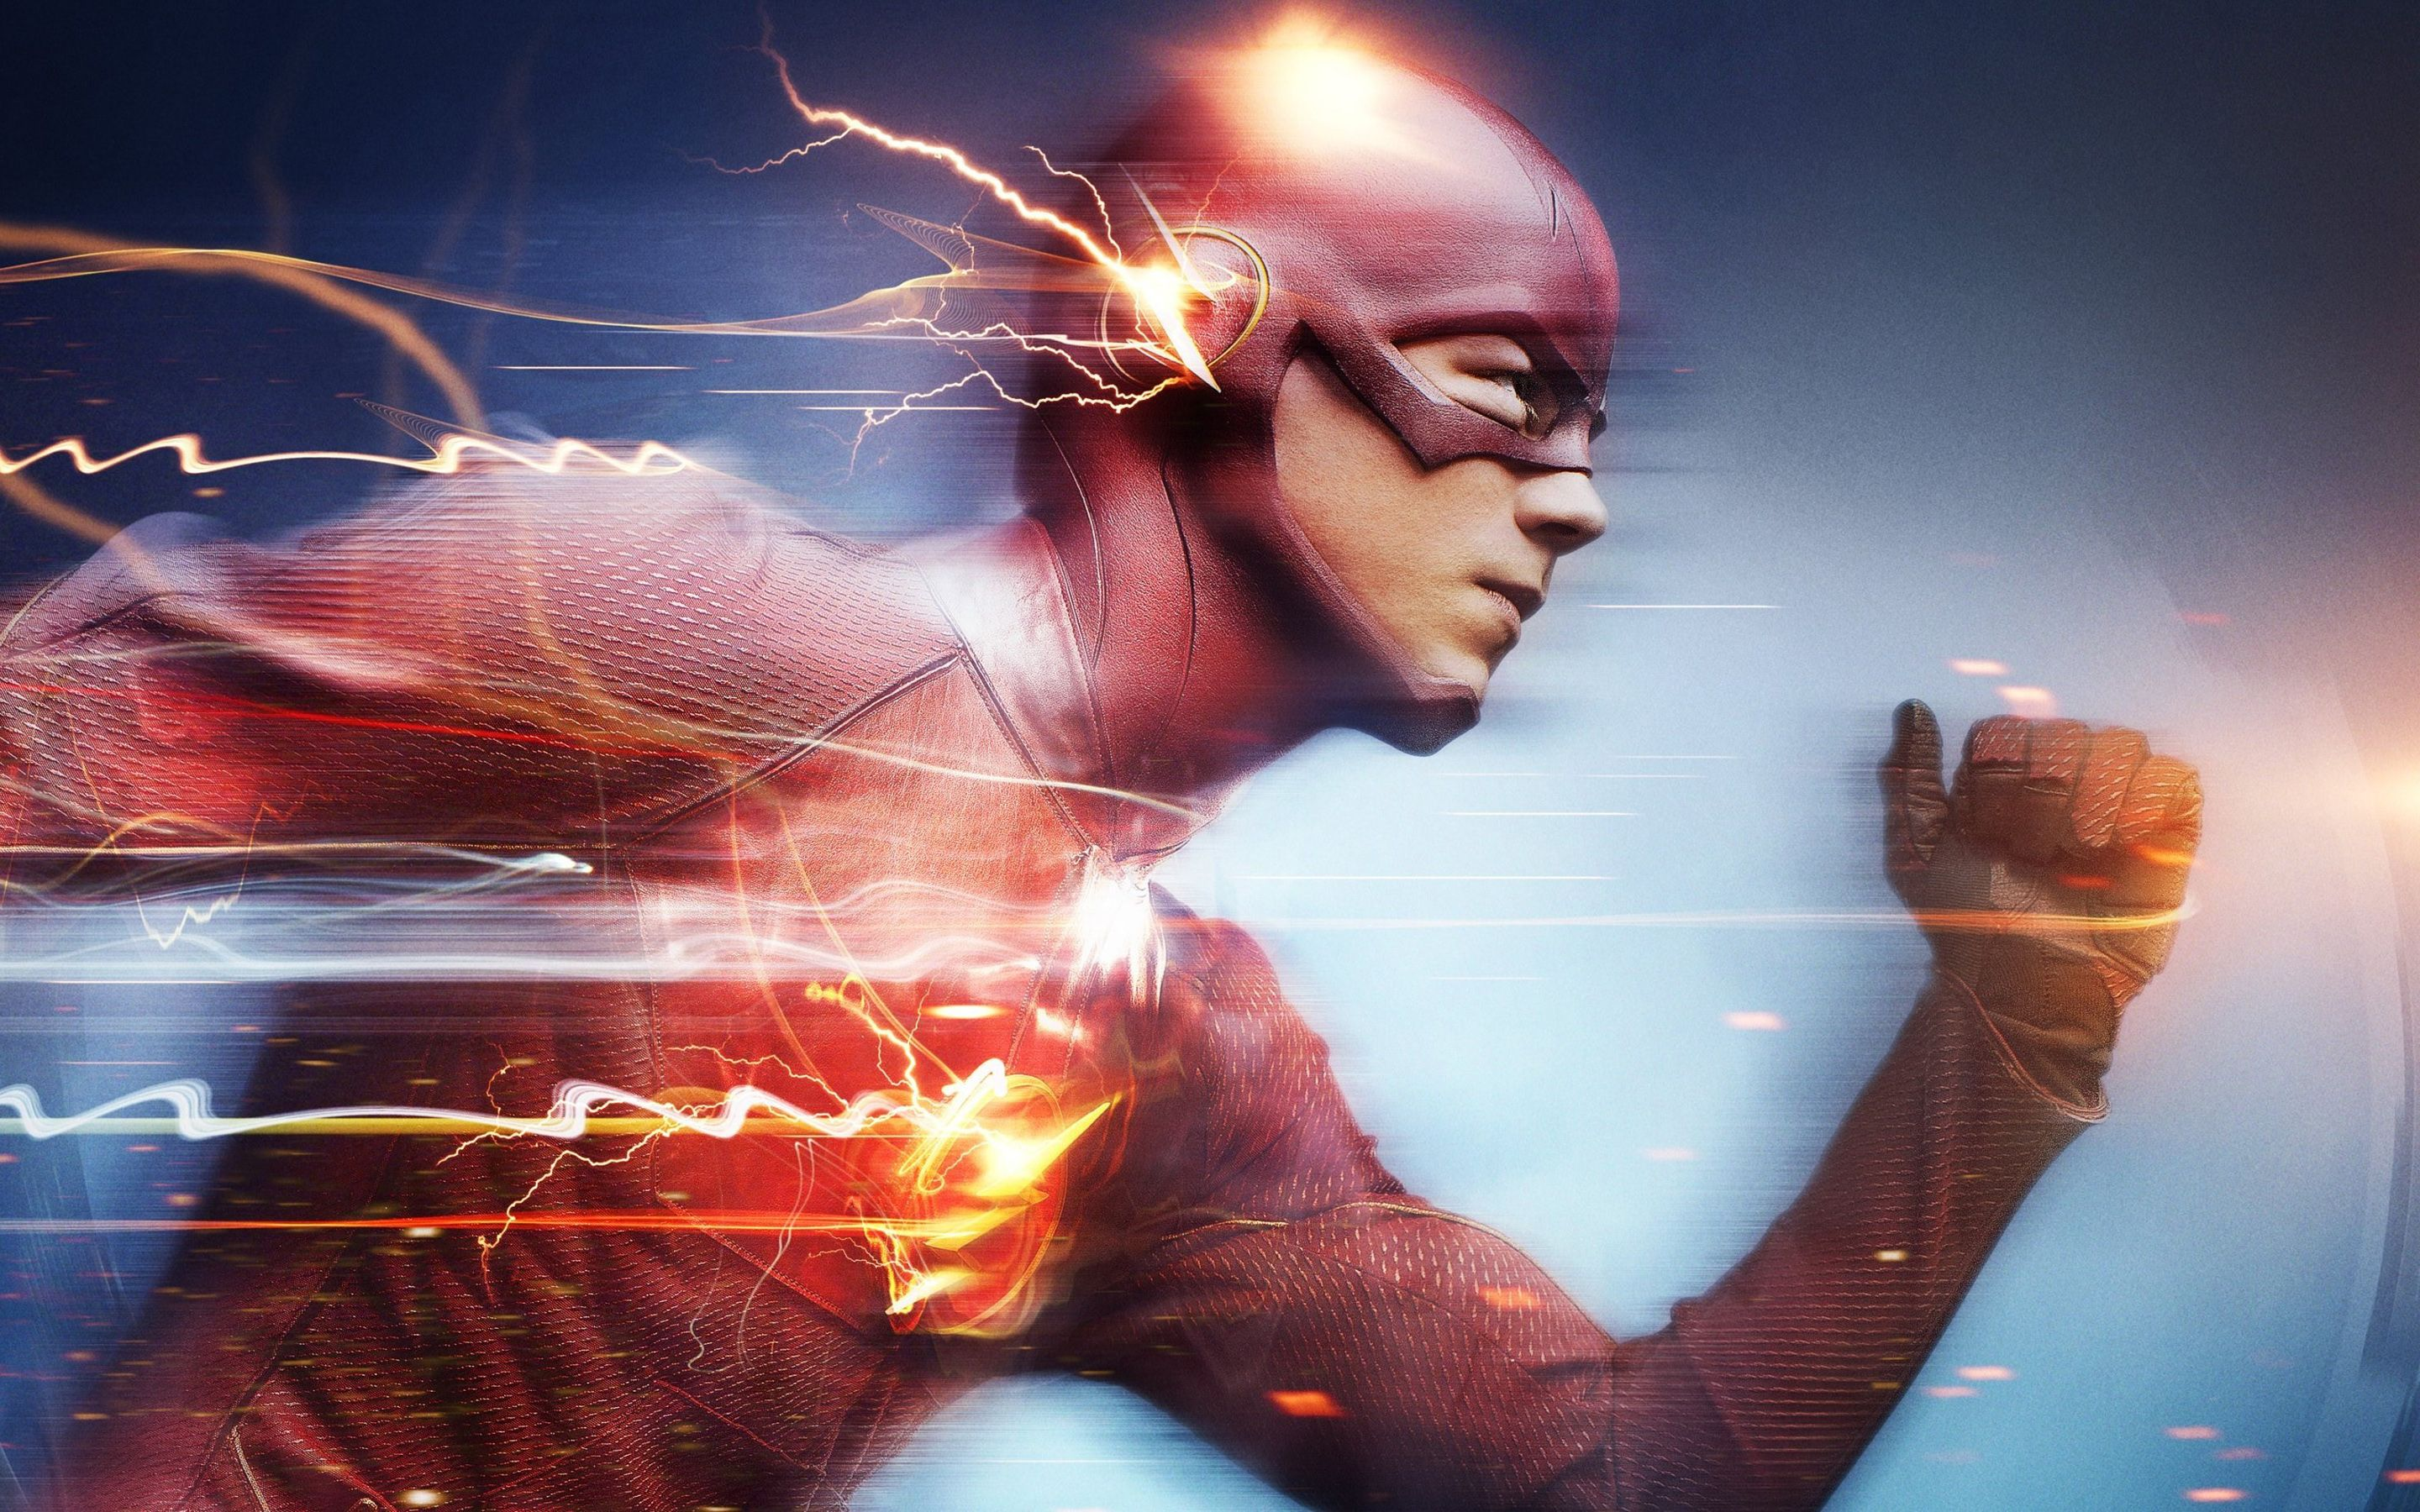 Barry Allen The Flash WallPaper HD - http://imashon.com/tv-series/barry-allen-the-flash-wallpaper-hd.html